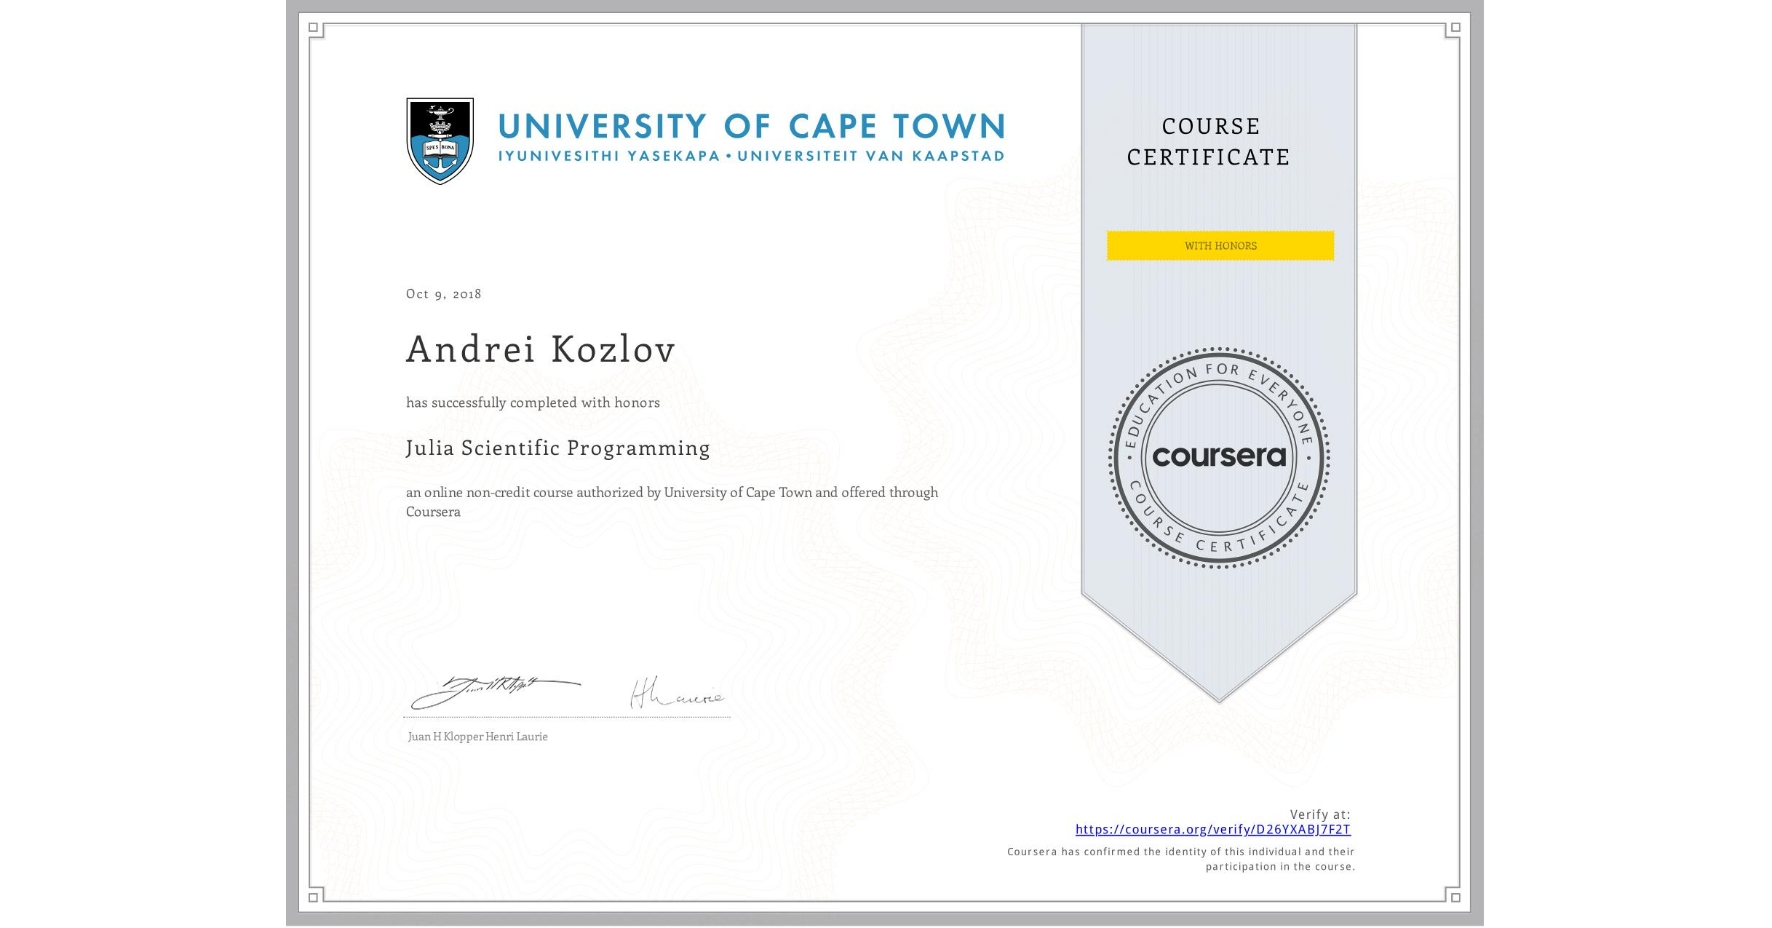 View certificate for Andrei Kozlov, Julia Scientific Programming, an online non-credit course authorized by University of Cape Town and offered through Coursera